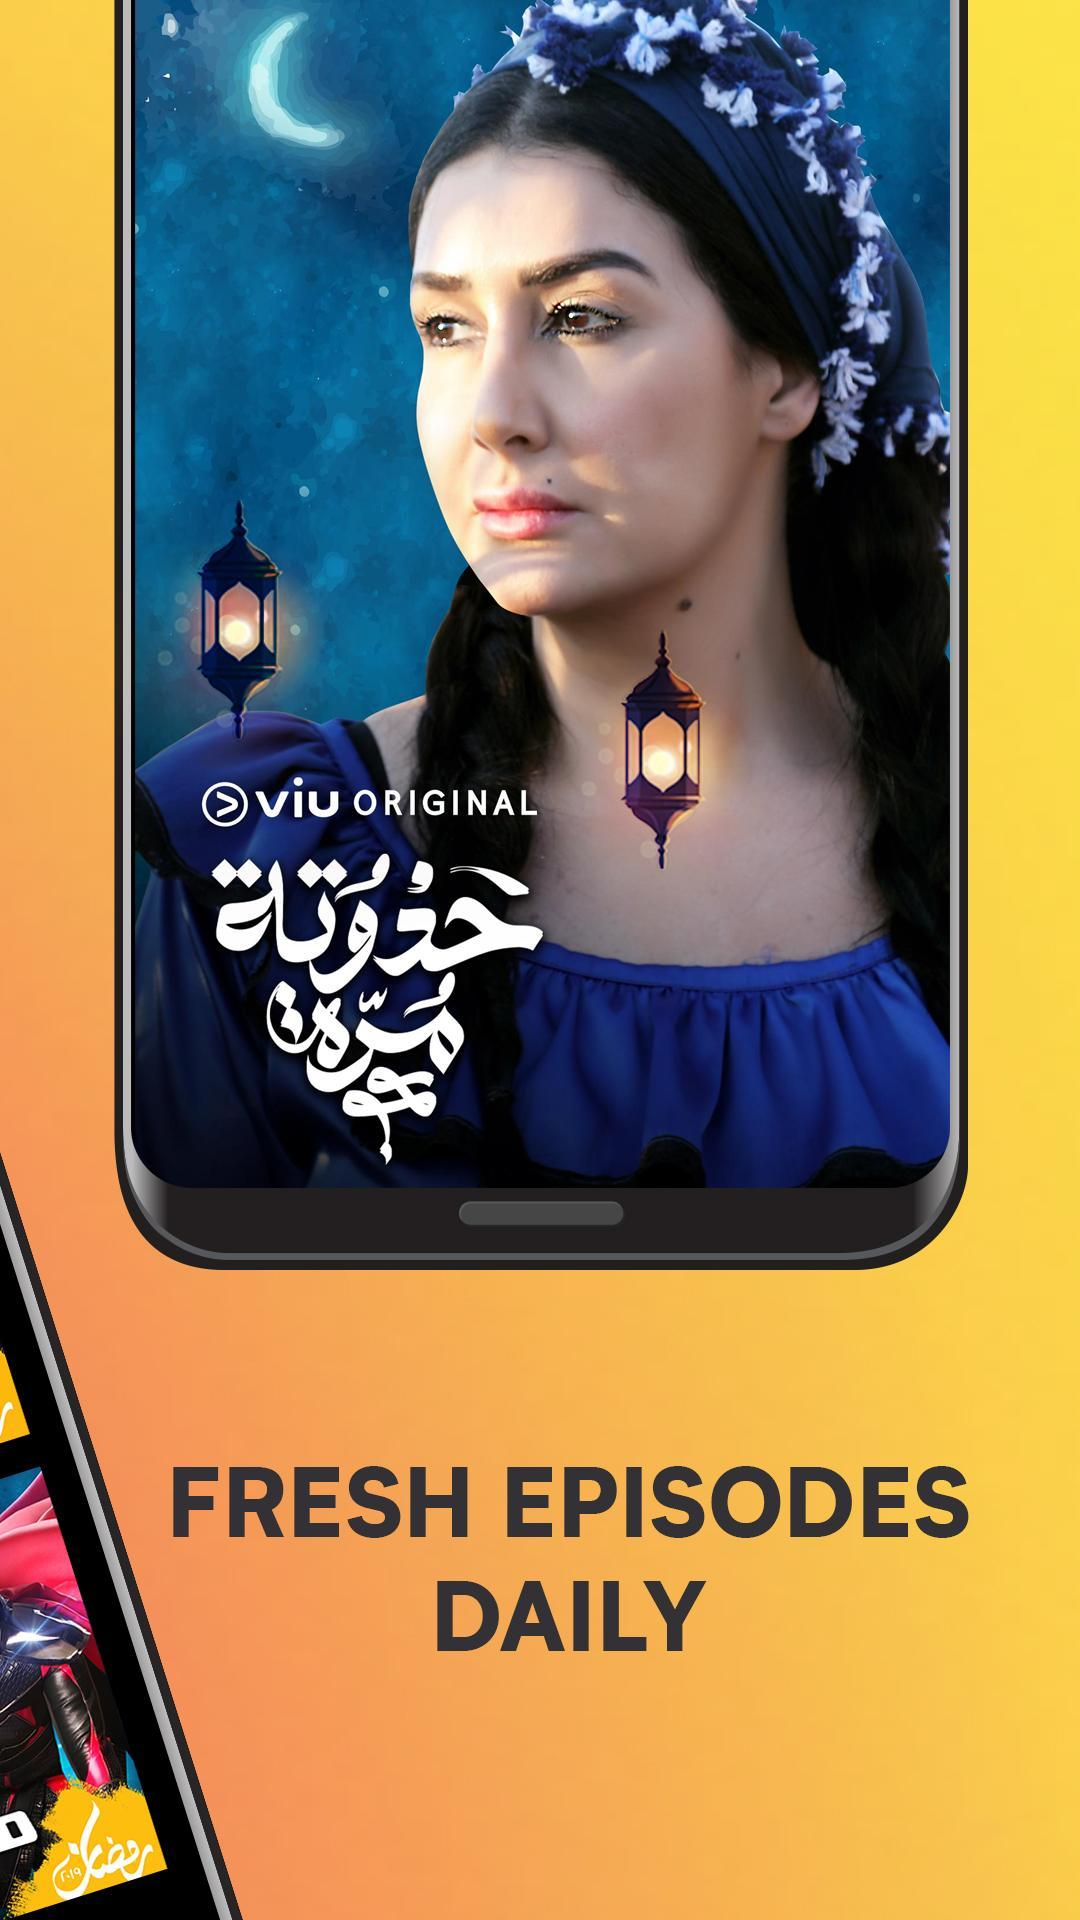 How To Download Viu Videos On Laptop